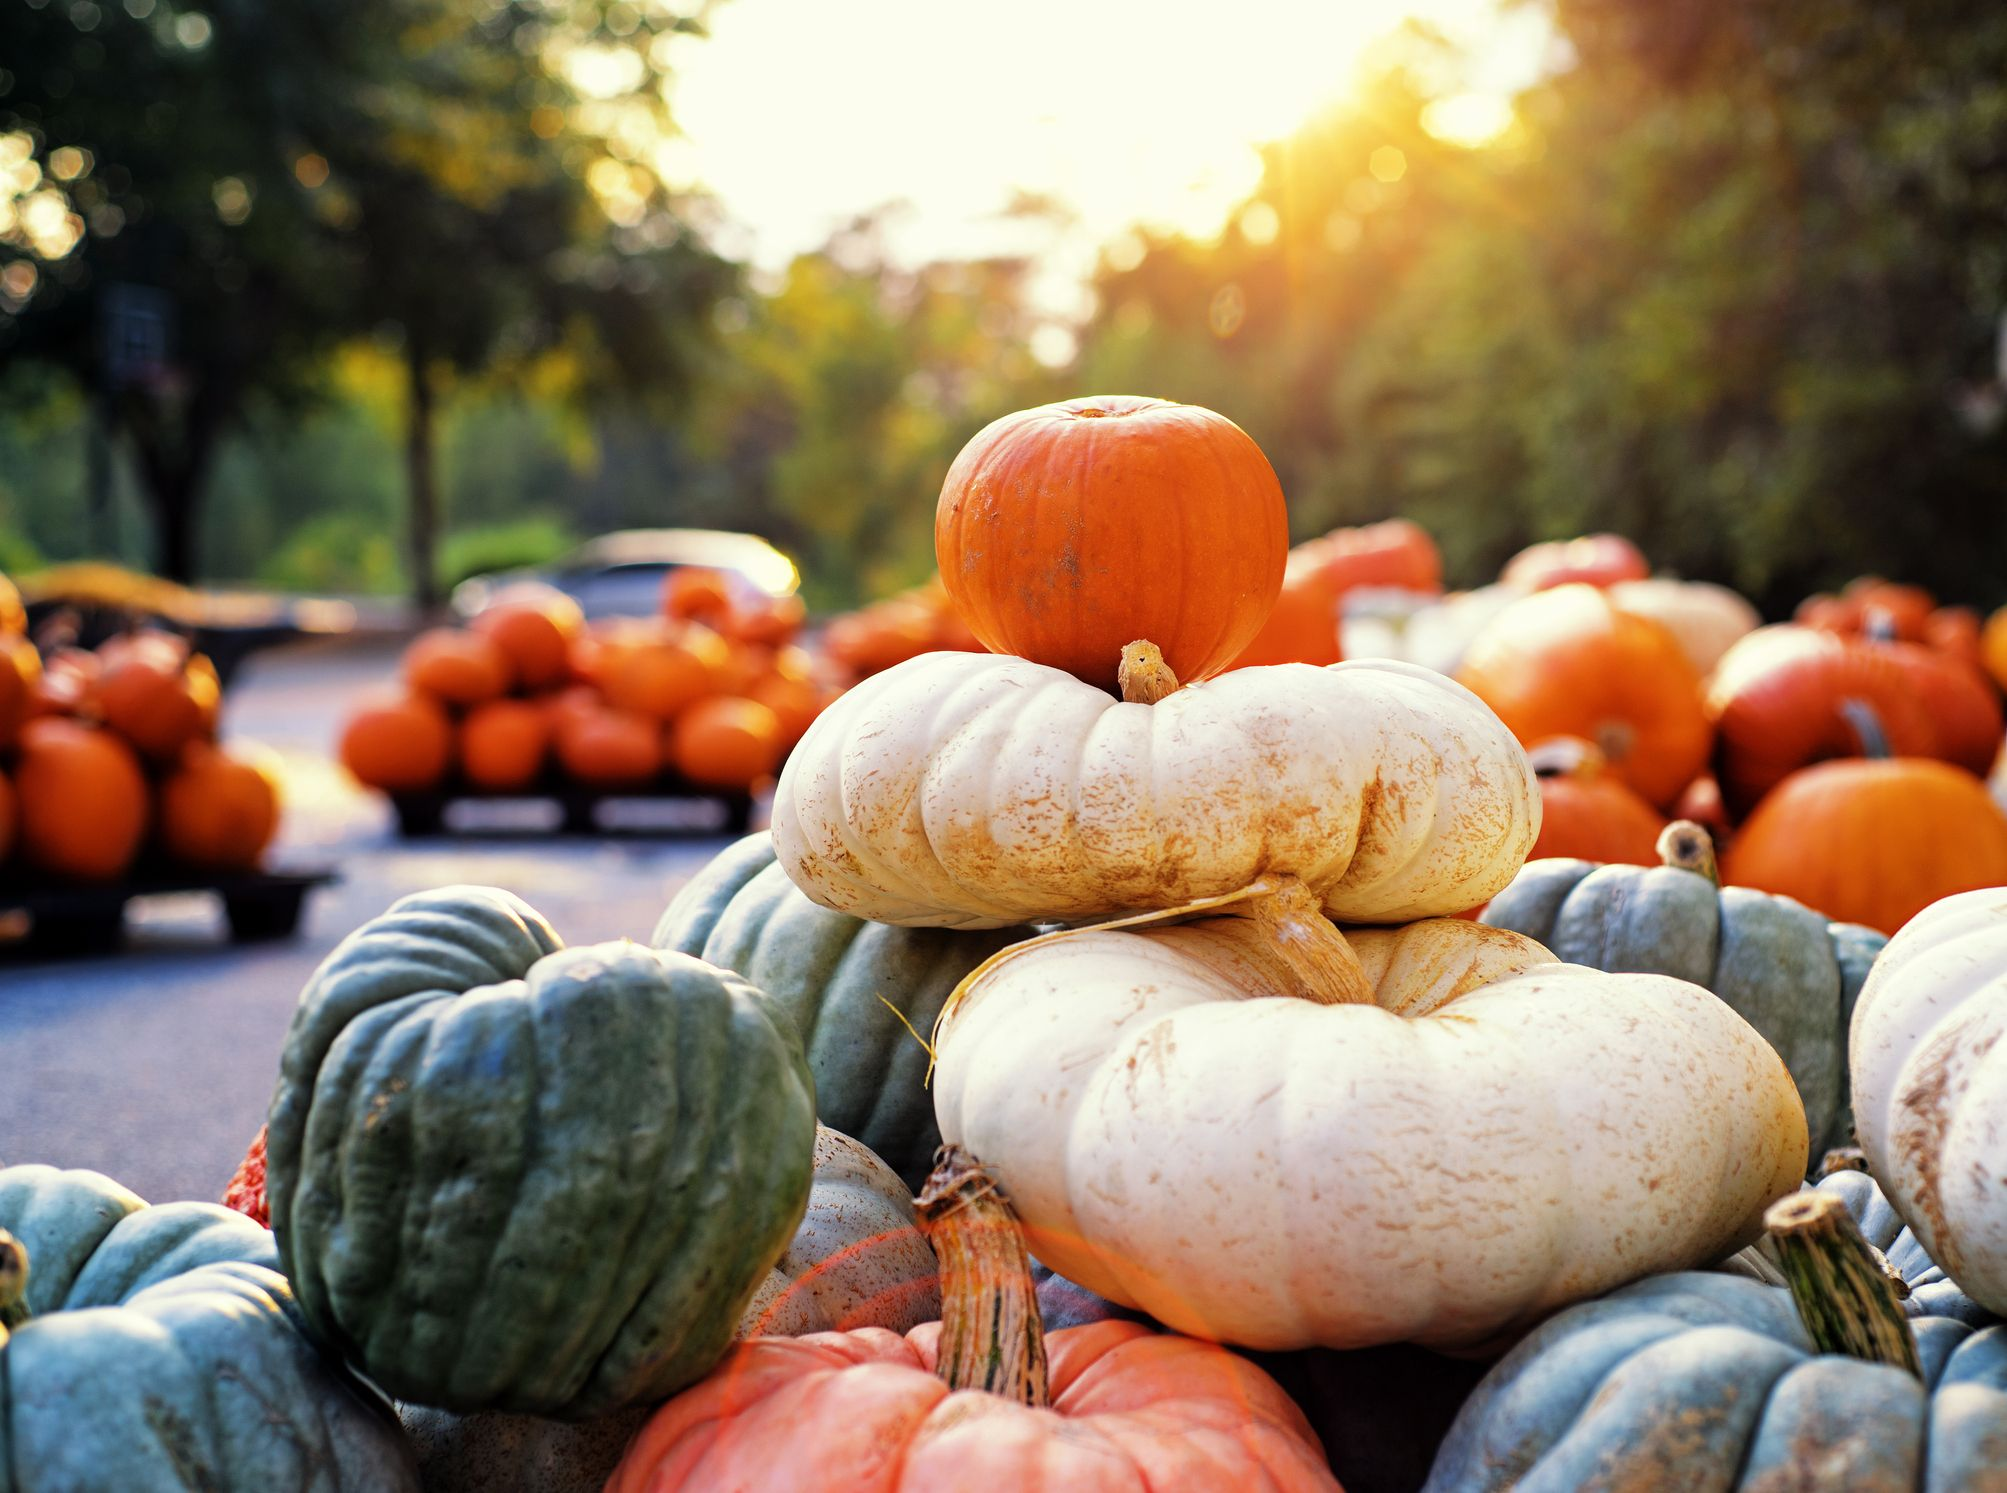 5 of the best pumpkin farms near London to visit this autumn